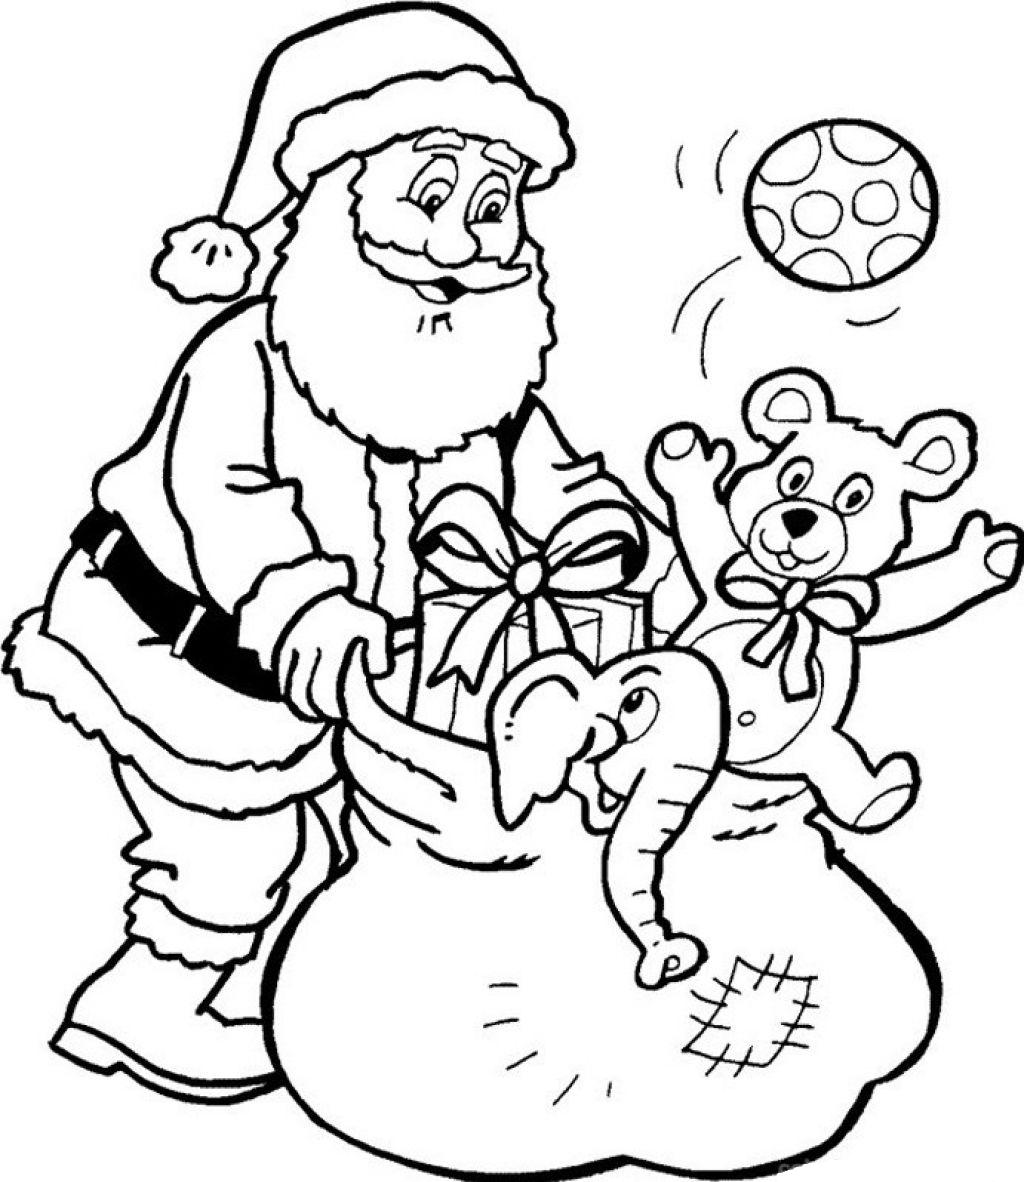 father christmas online coloring pages - photo#10